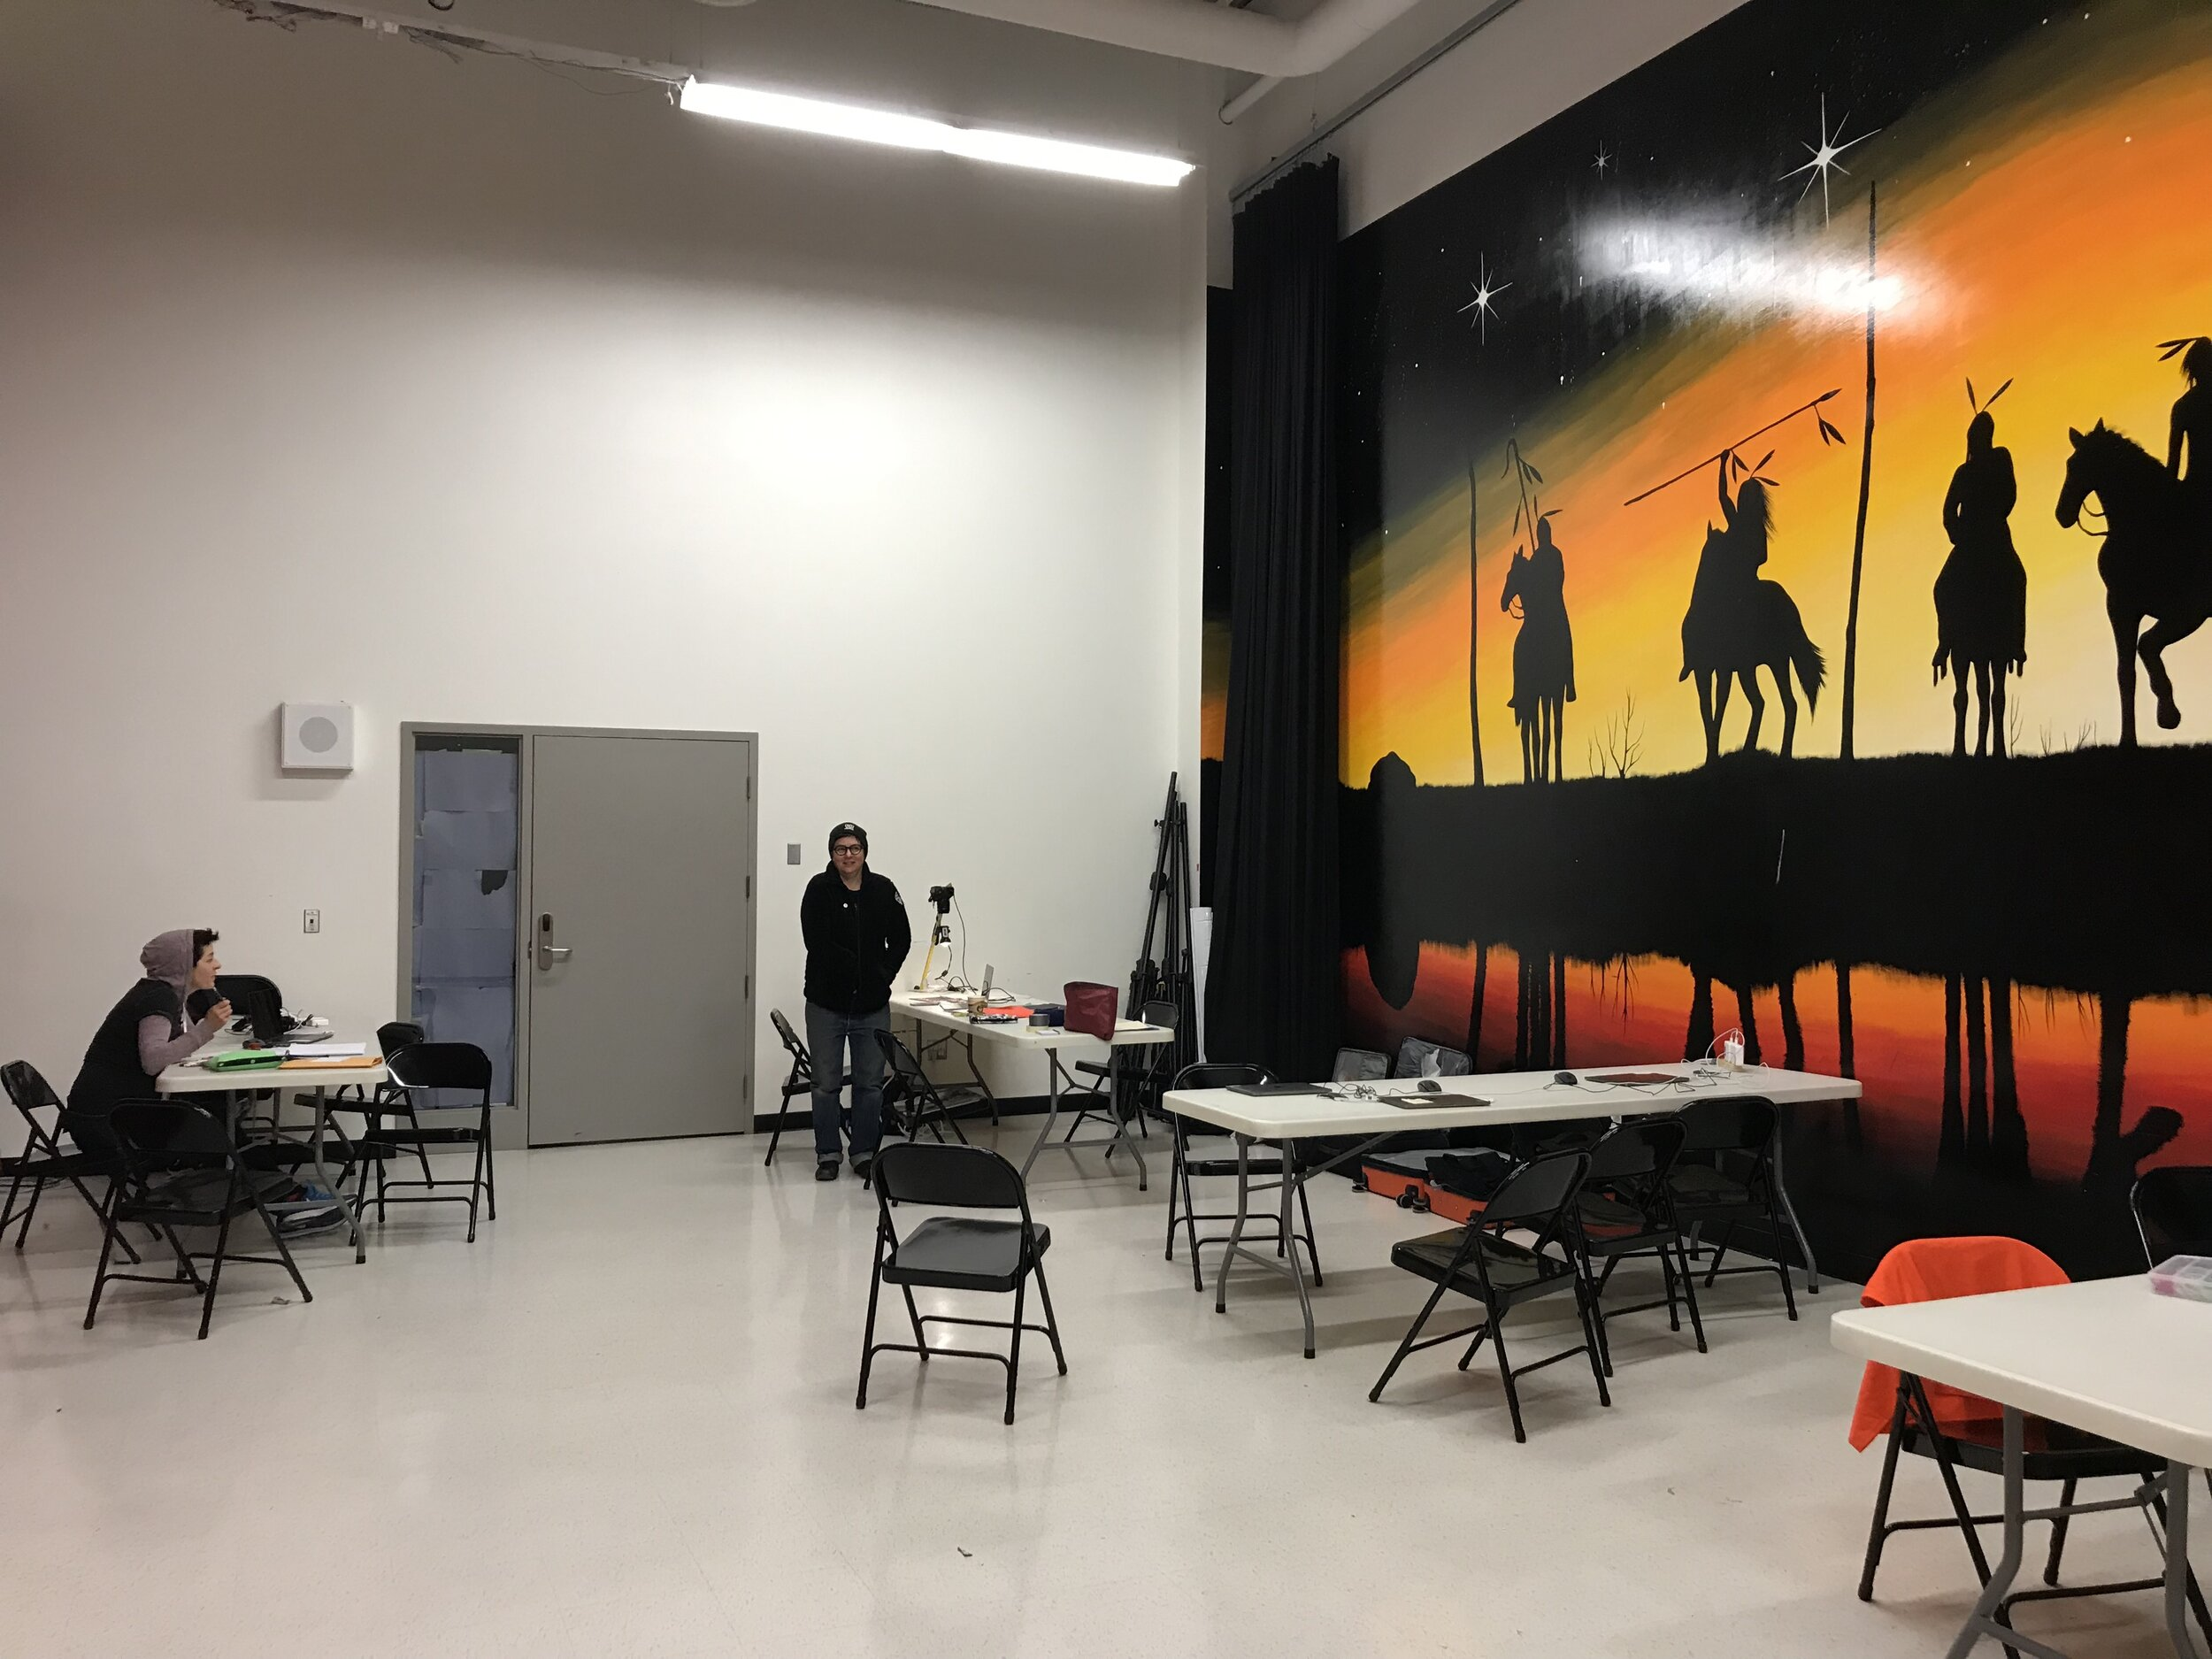 Our 'on the stage' workshop space